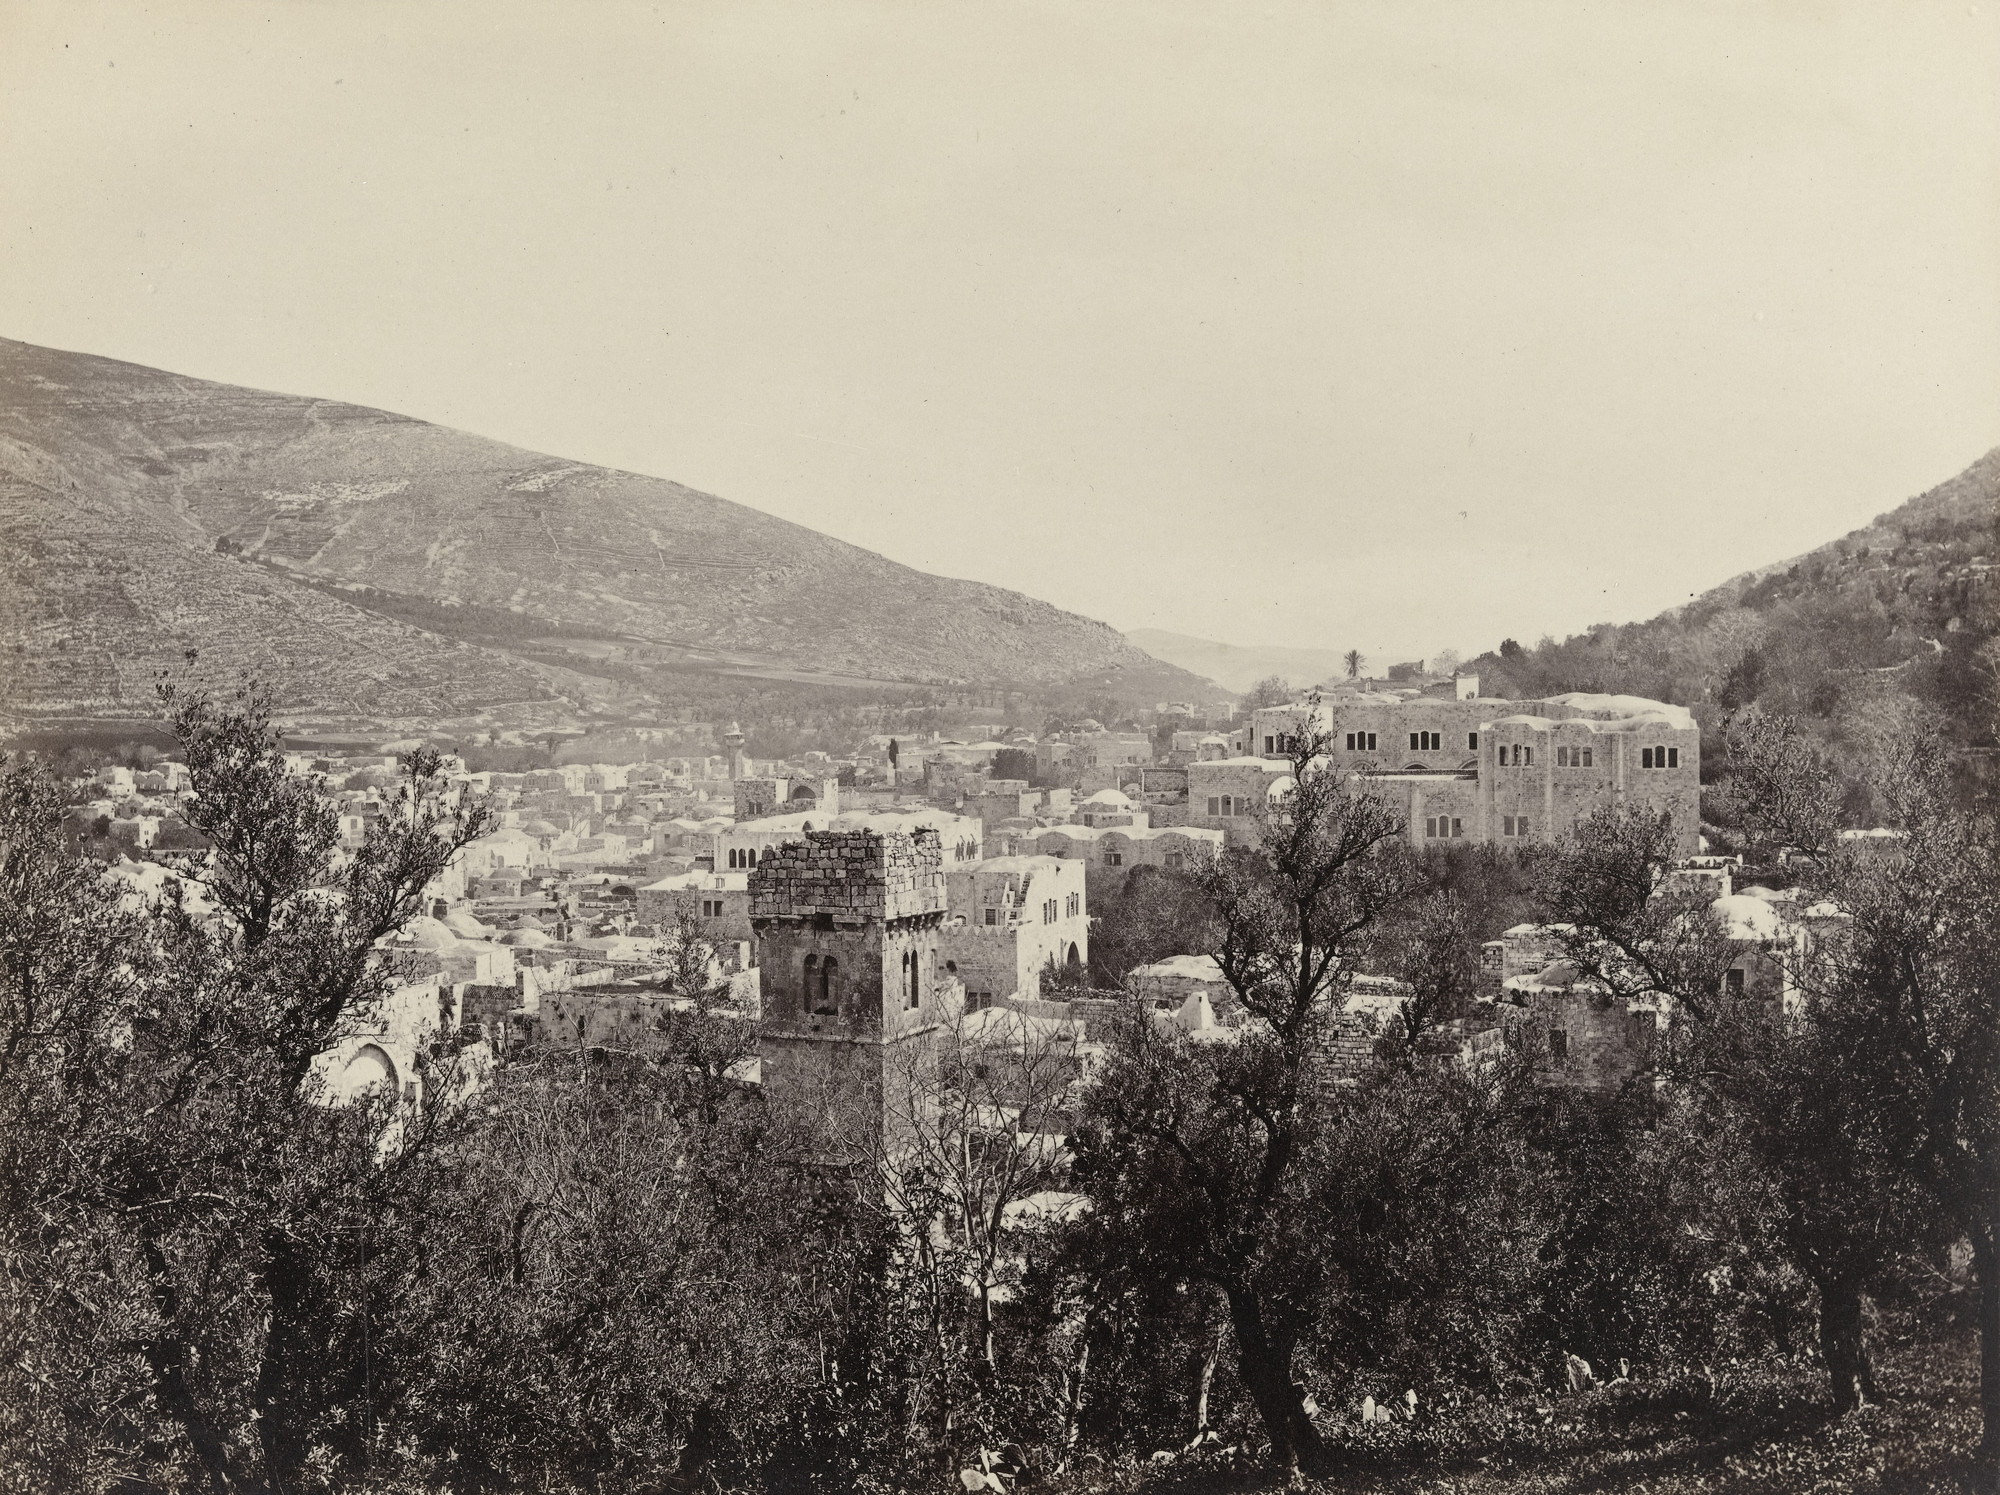 Francis Frith. Shechem (Nablous), Between Ebel and Gerizim (#590). c. 1860